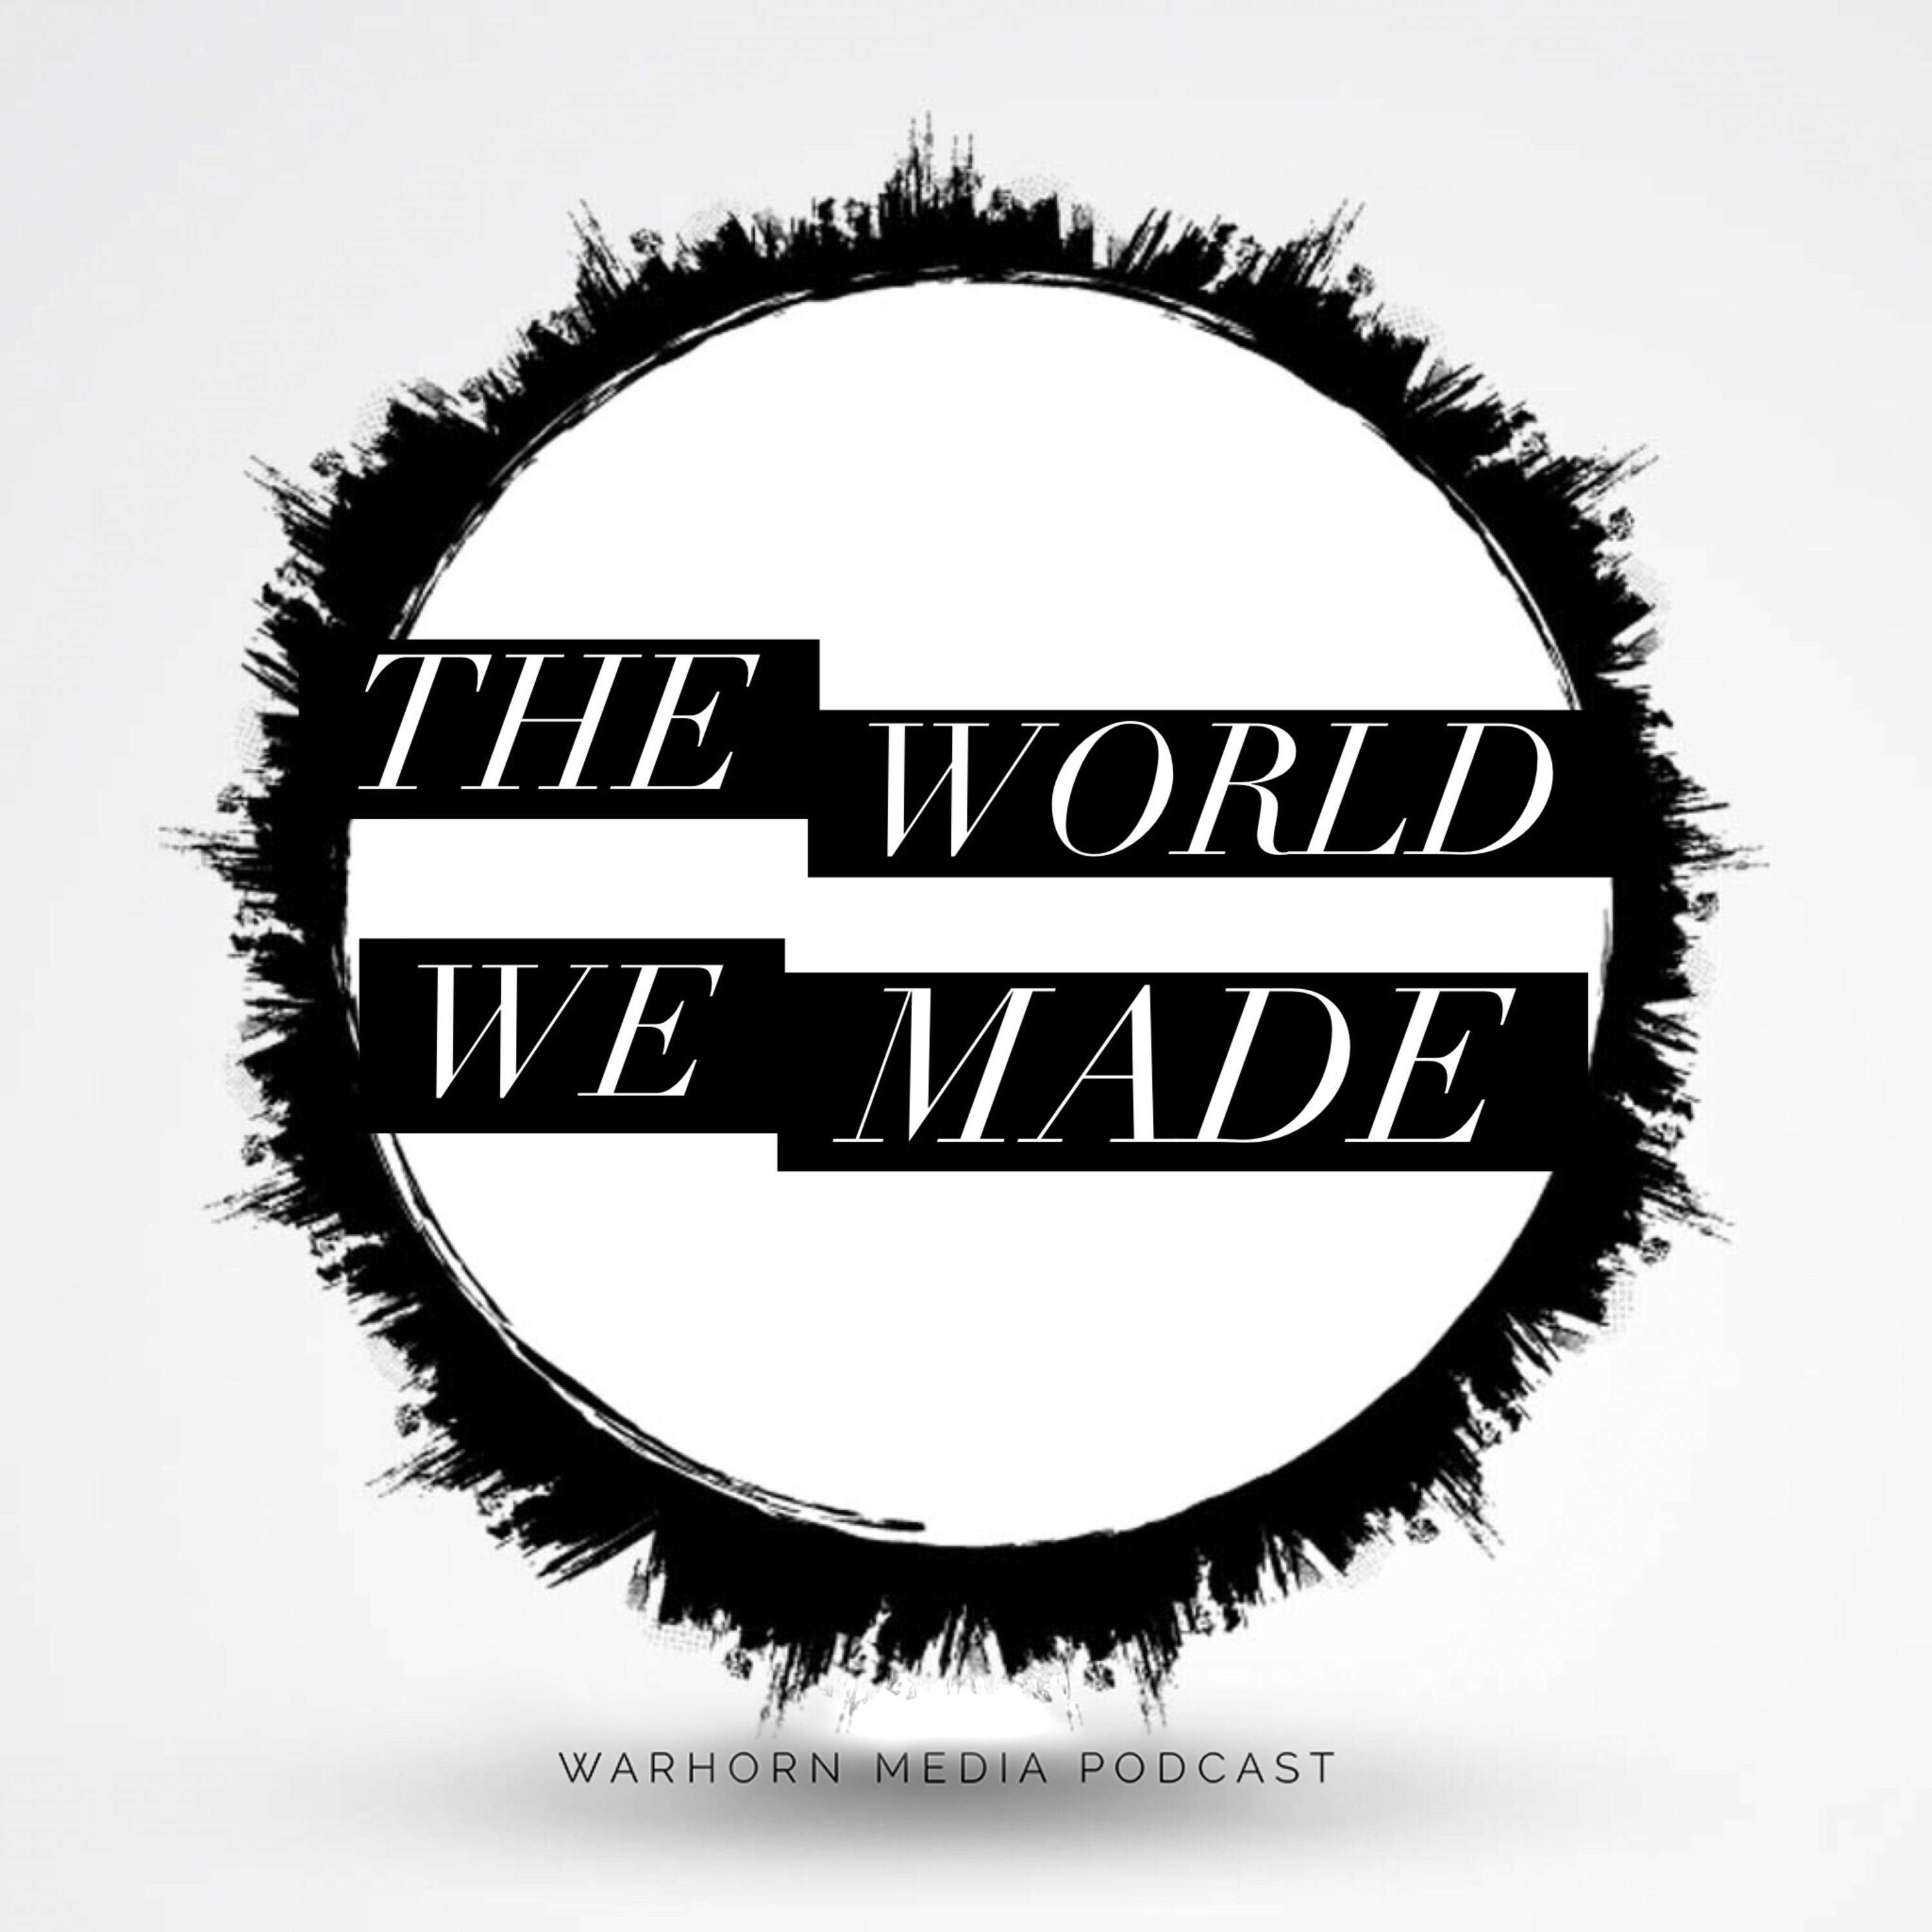 The World We Made